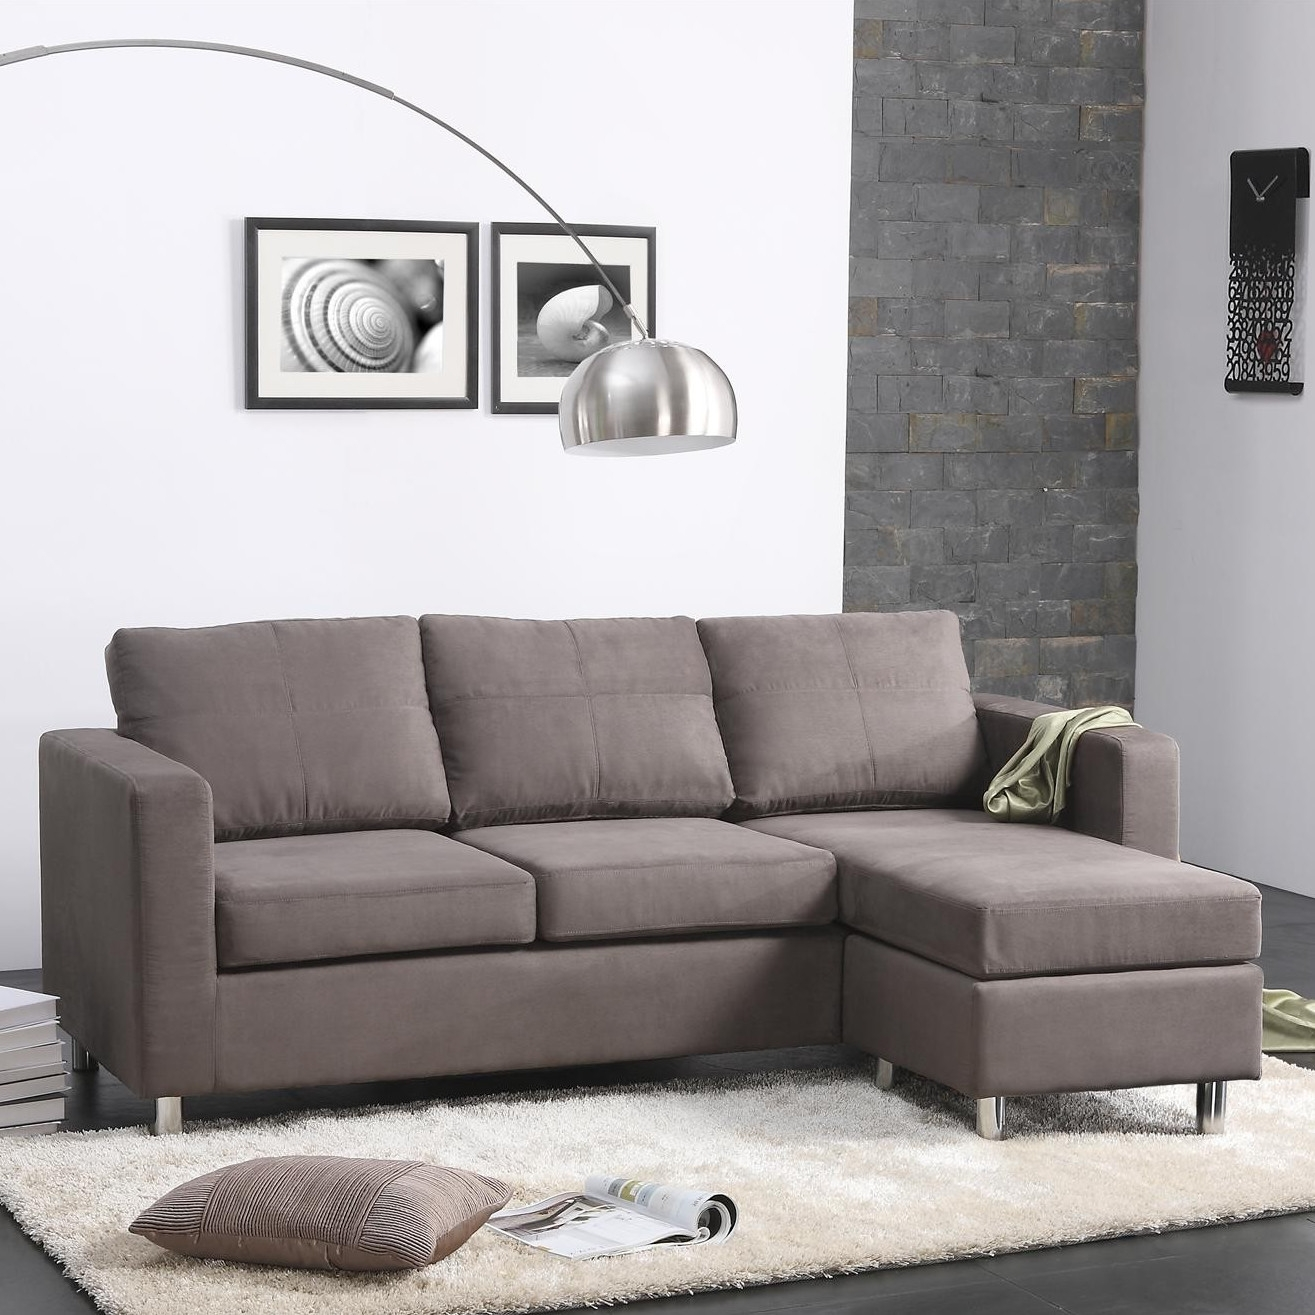 Small Spaces Configurable Sectional Sofa Roselawnlutheran Regarding Small Sectional Sofa (Image 13 of 15)